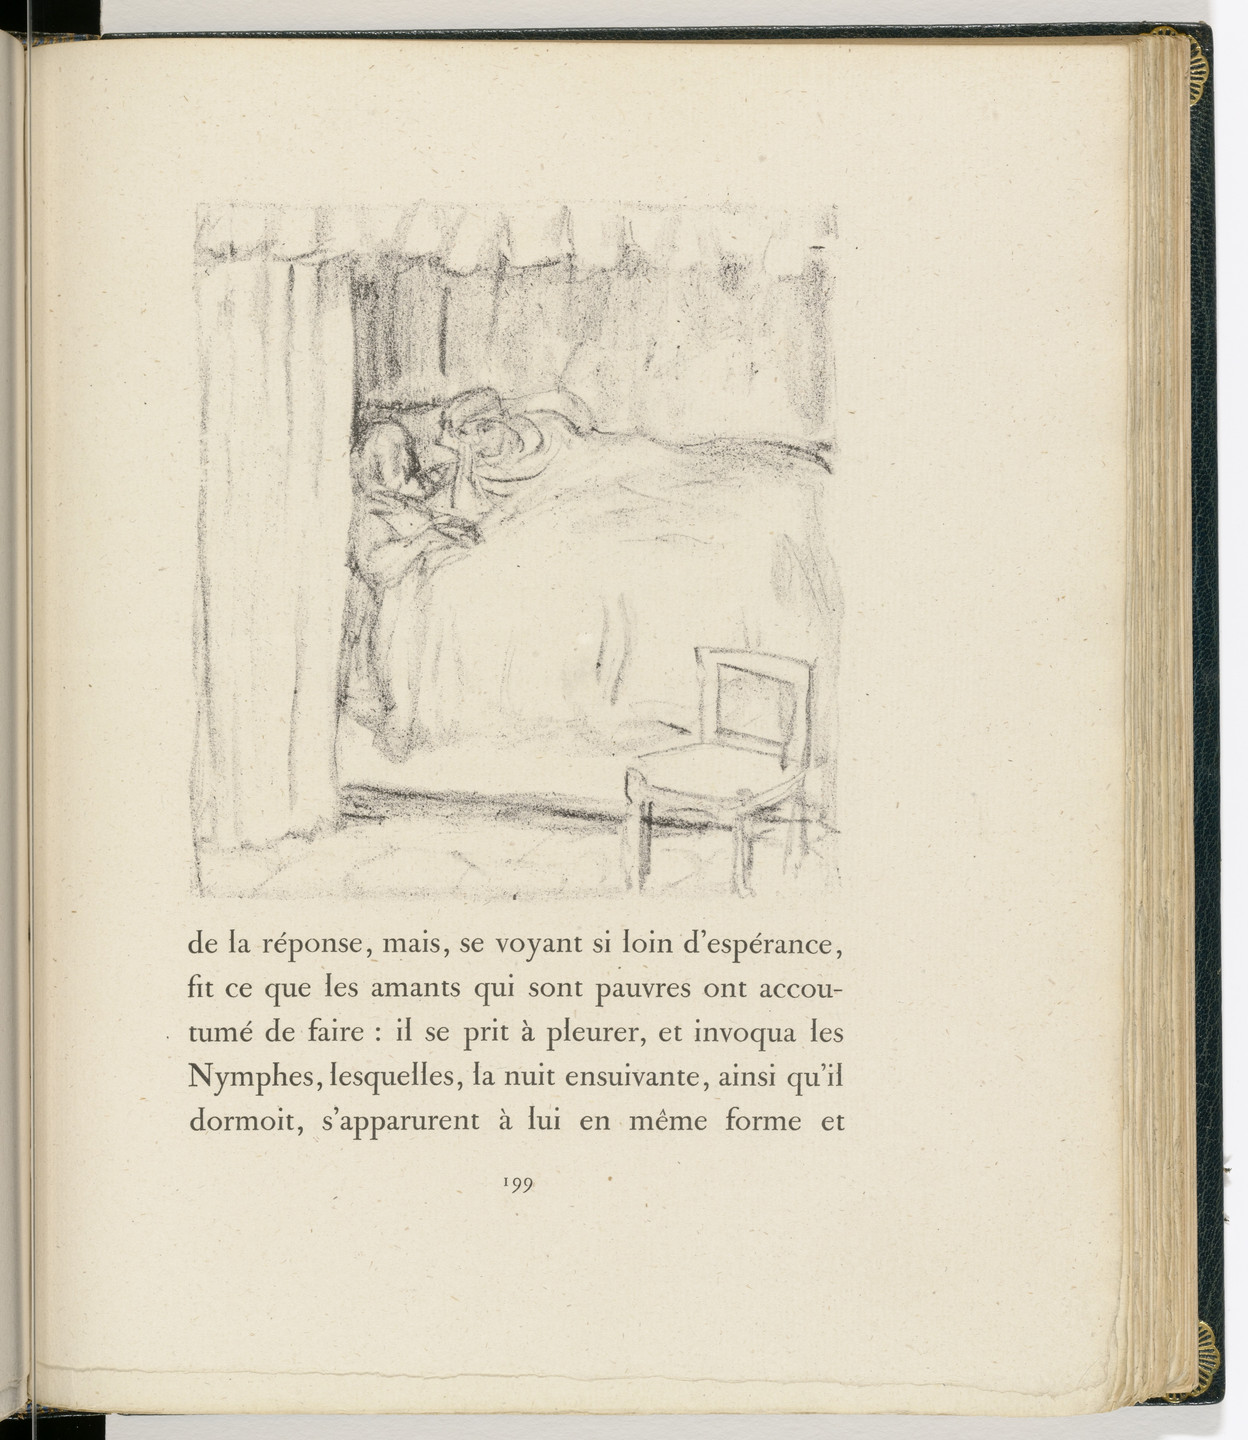 Pierre Bonnard. In-text plate (page 199) from Daphnis et Chloé. 1902